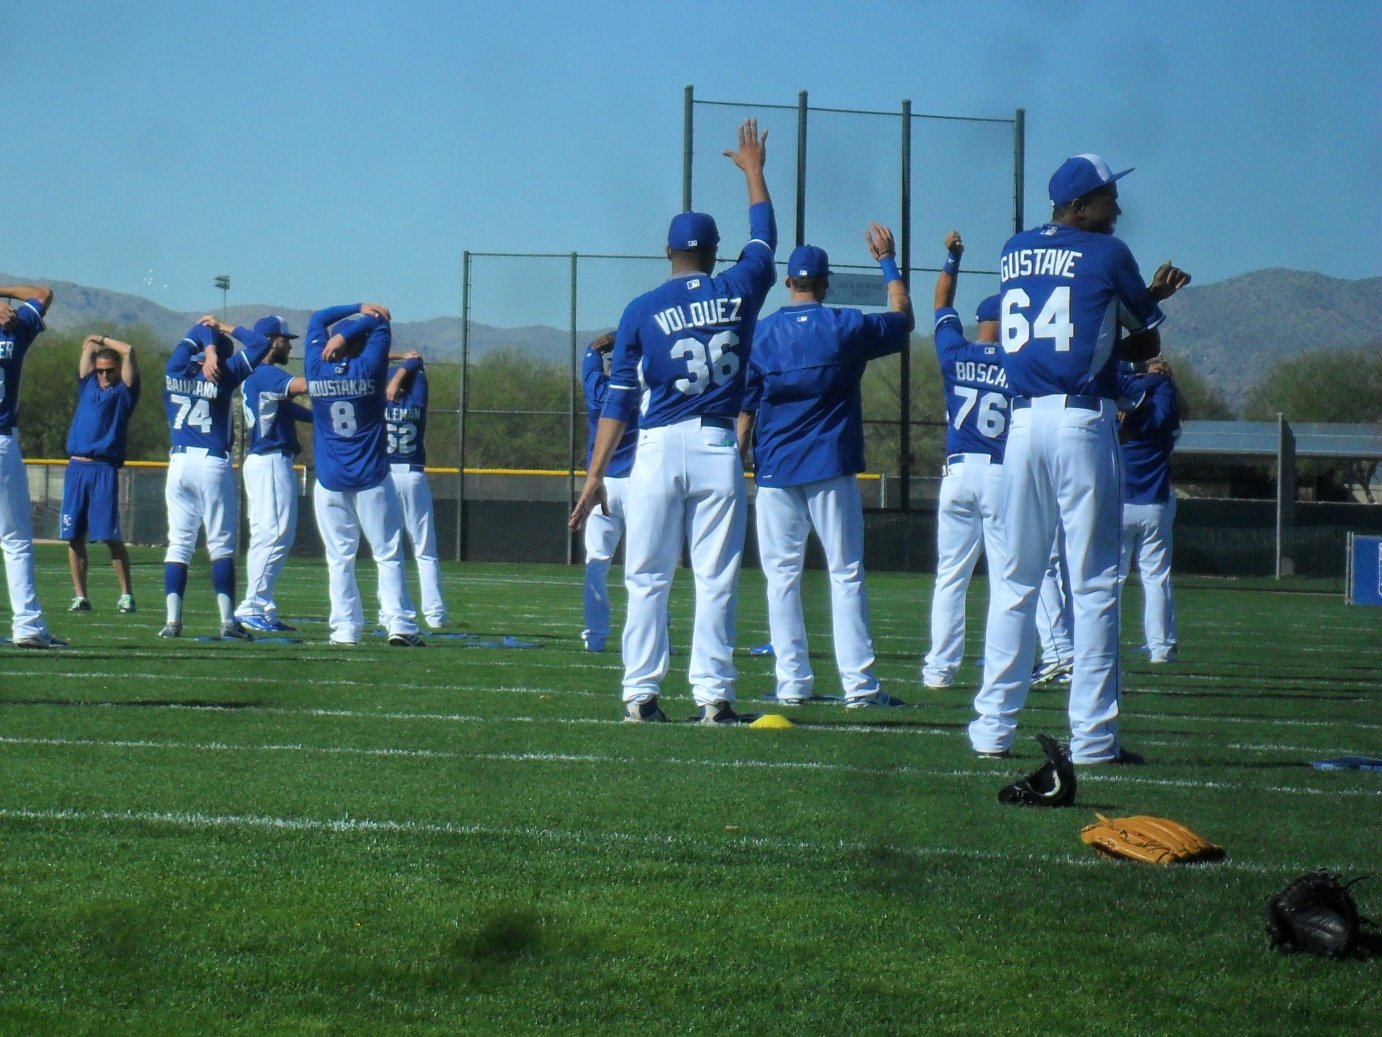 The KC Royals baseball team has gathered in Surprise, Arizona for Spring Training. (Photo by Greg Echlin)